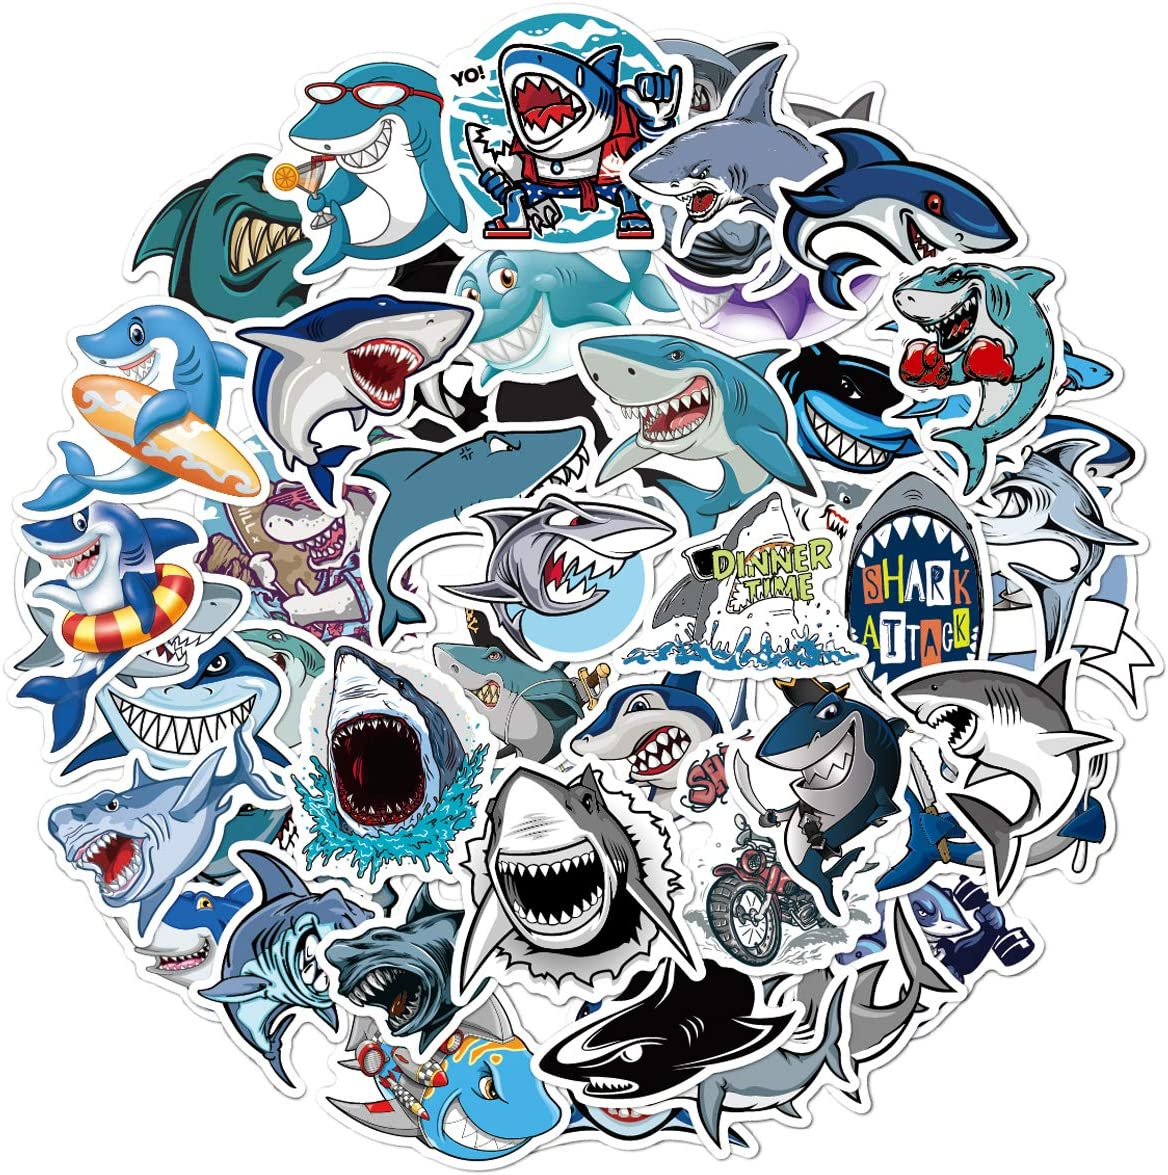 Shark Sticker Pack of 50 Stickers Sea Shark Stickers for Laptops Hydro Flasks Water Bottles Luggage